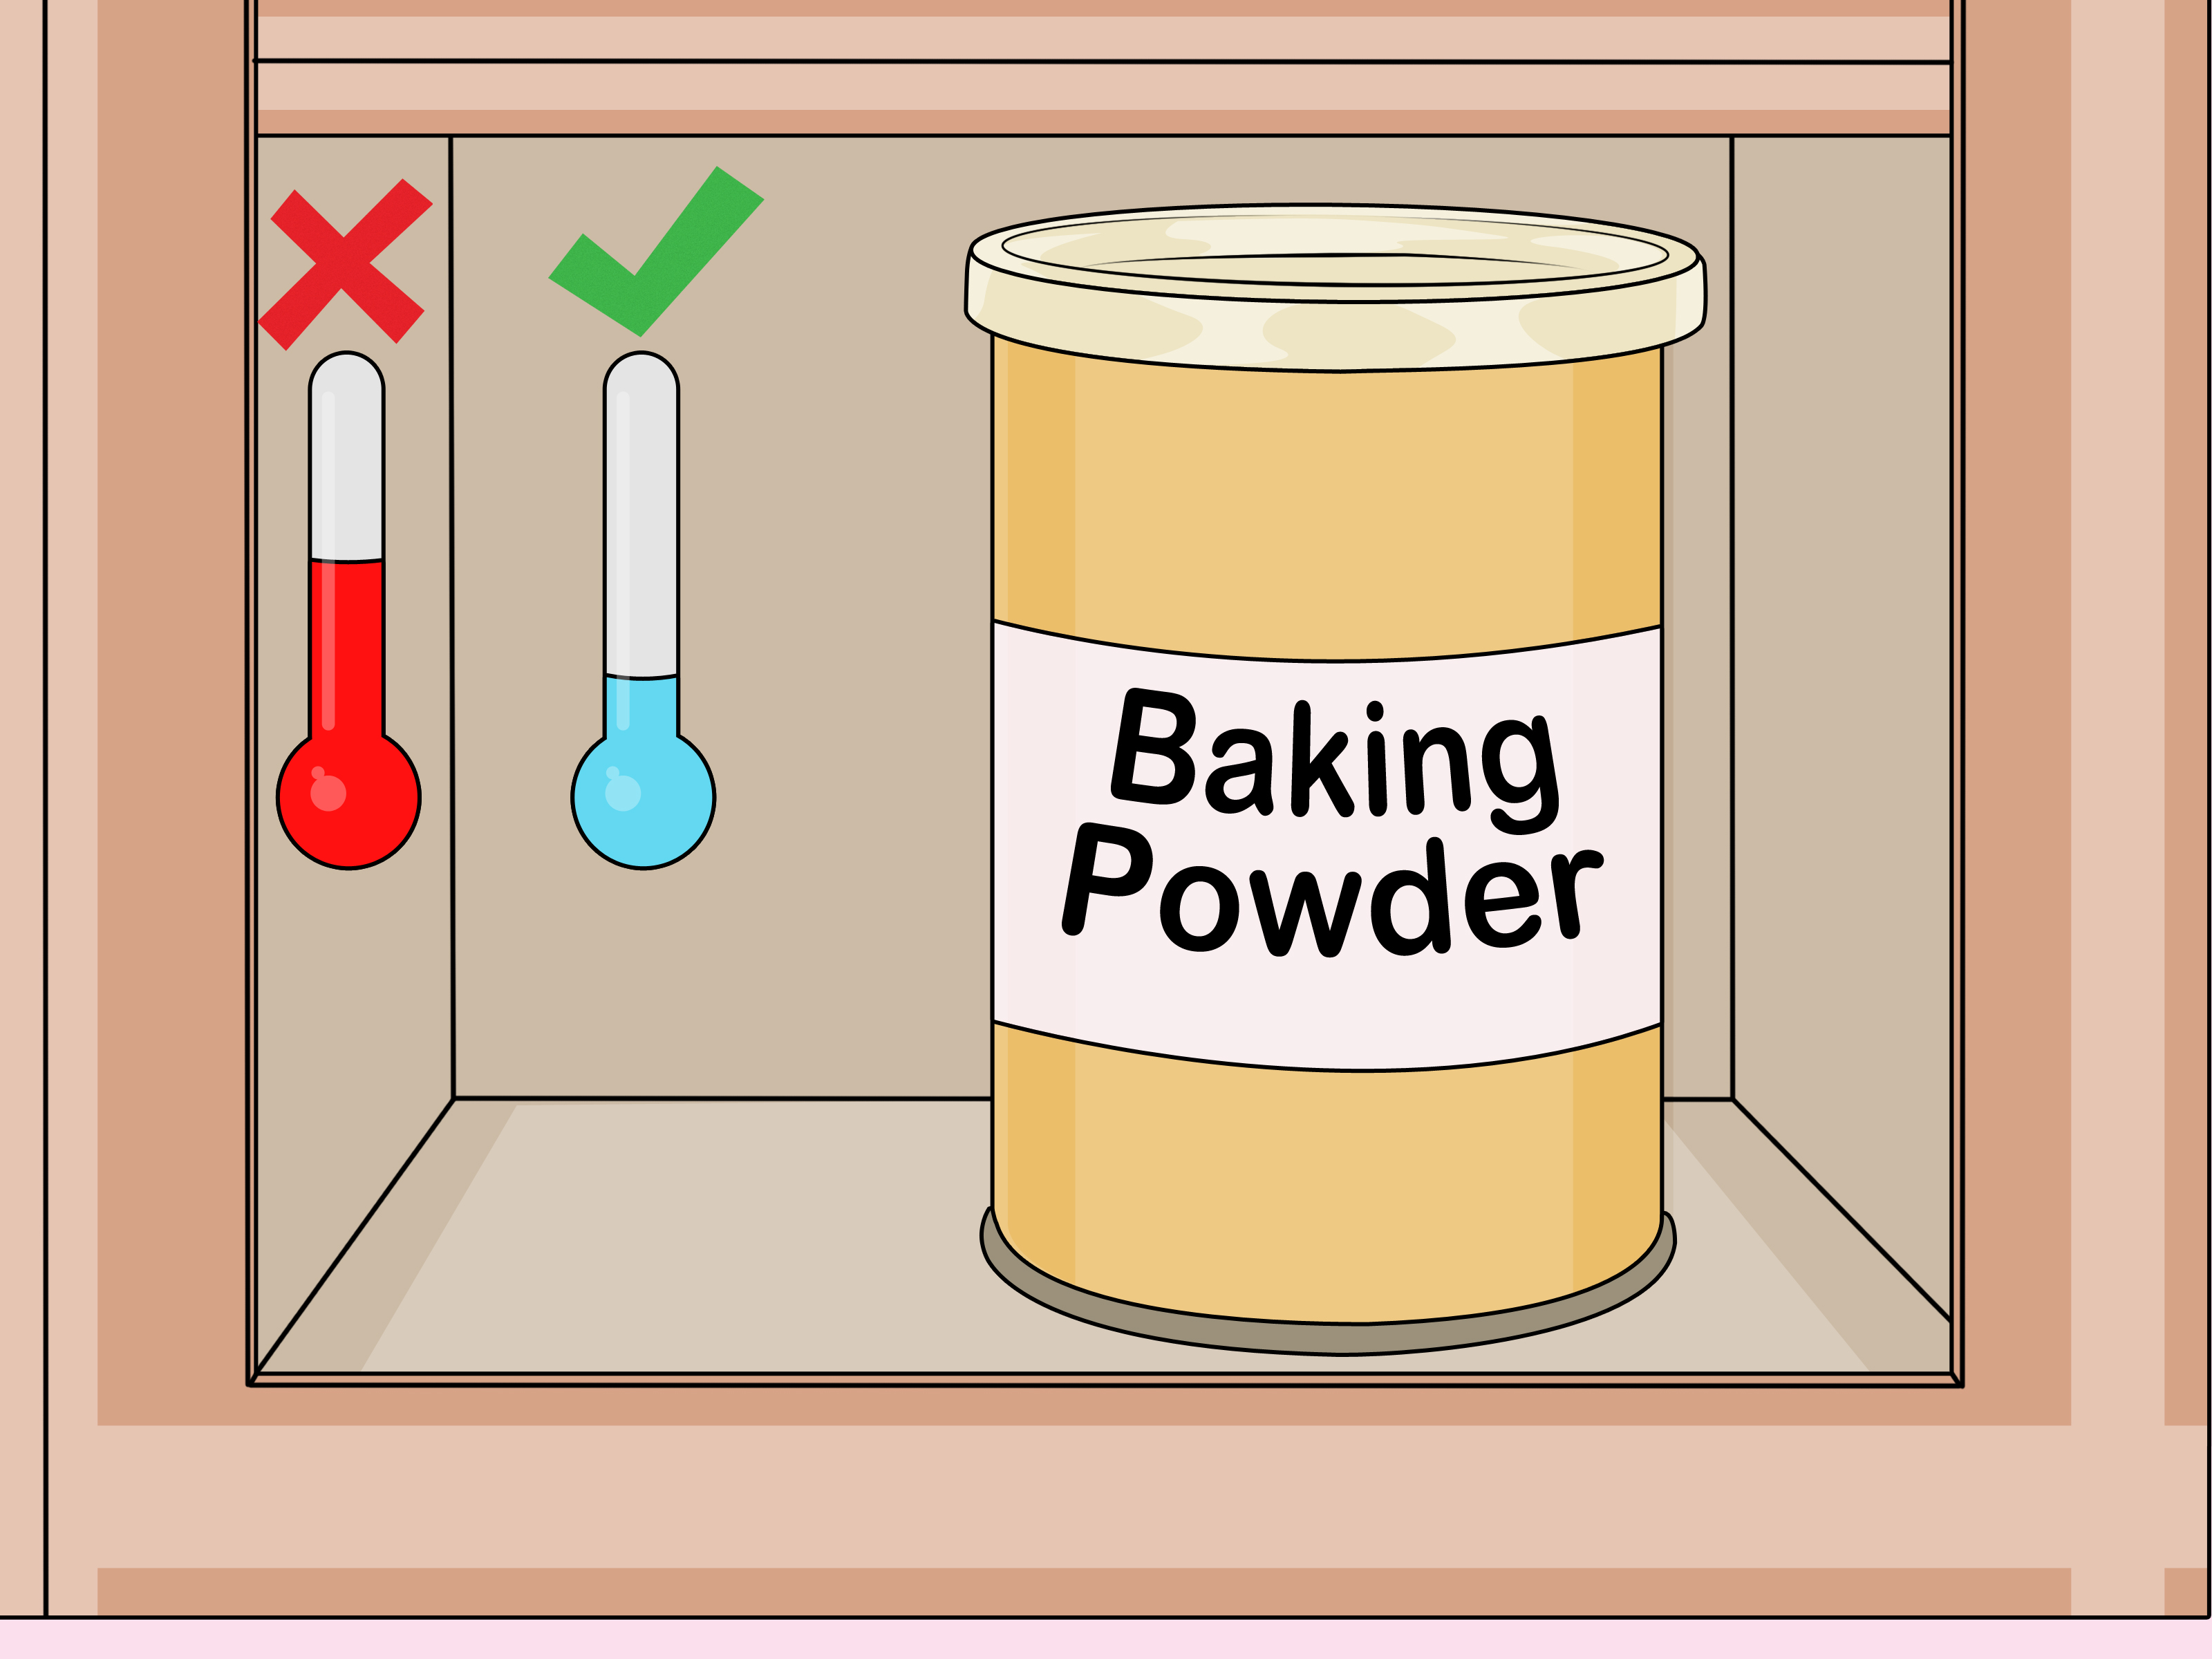 1 tablespoon baking powder clipart clipart images gallery.